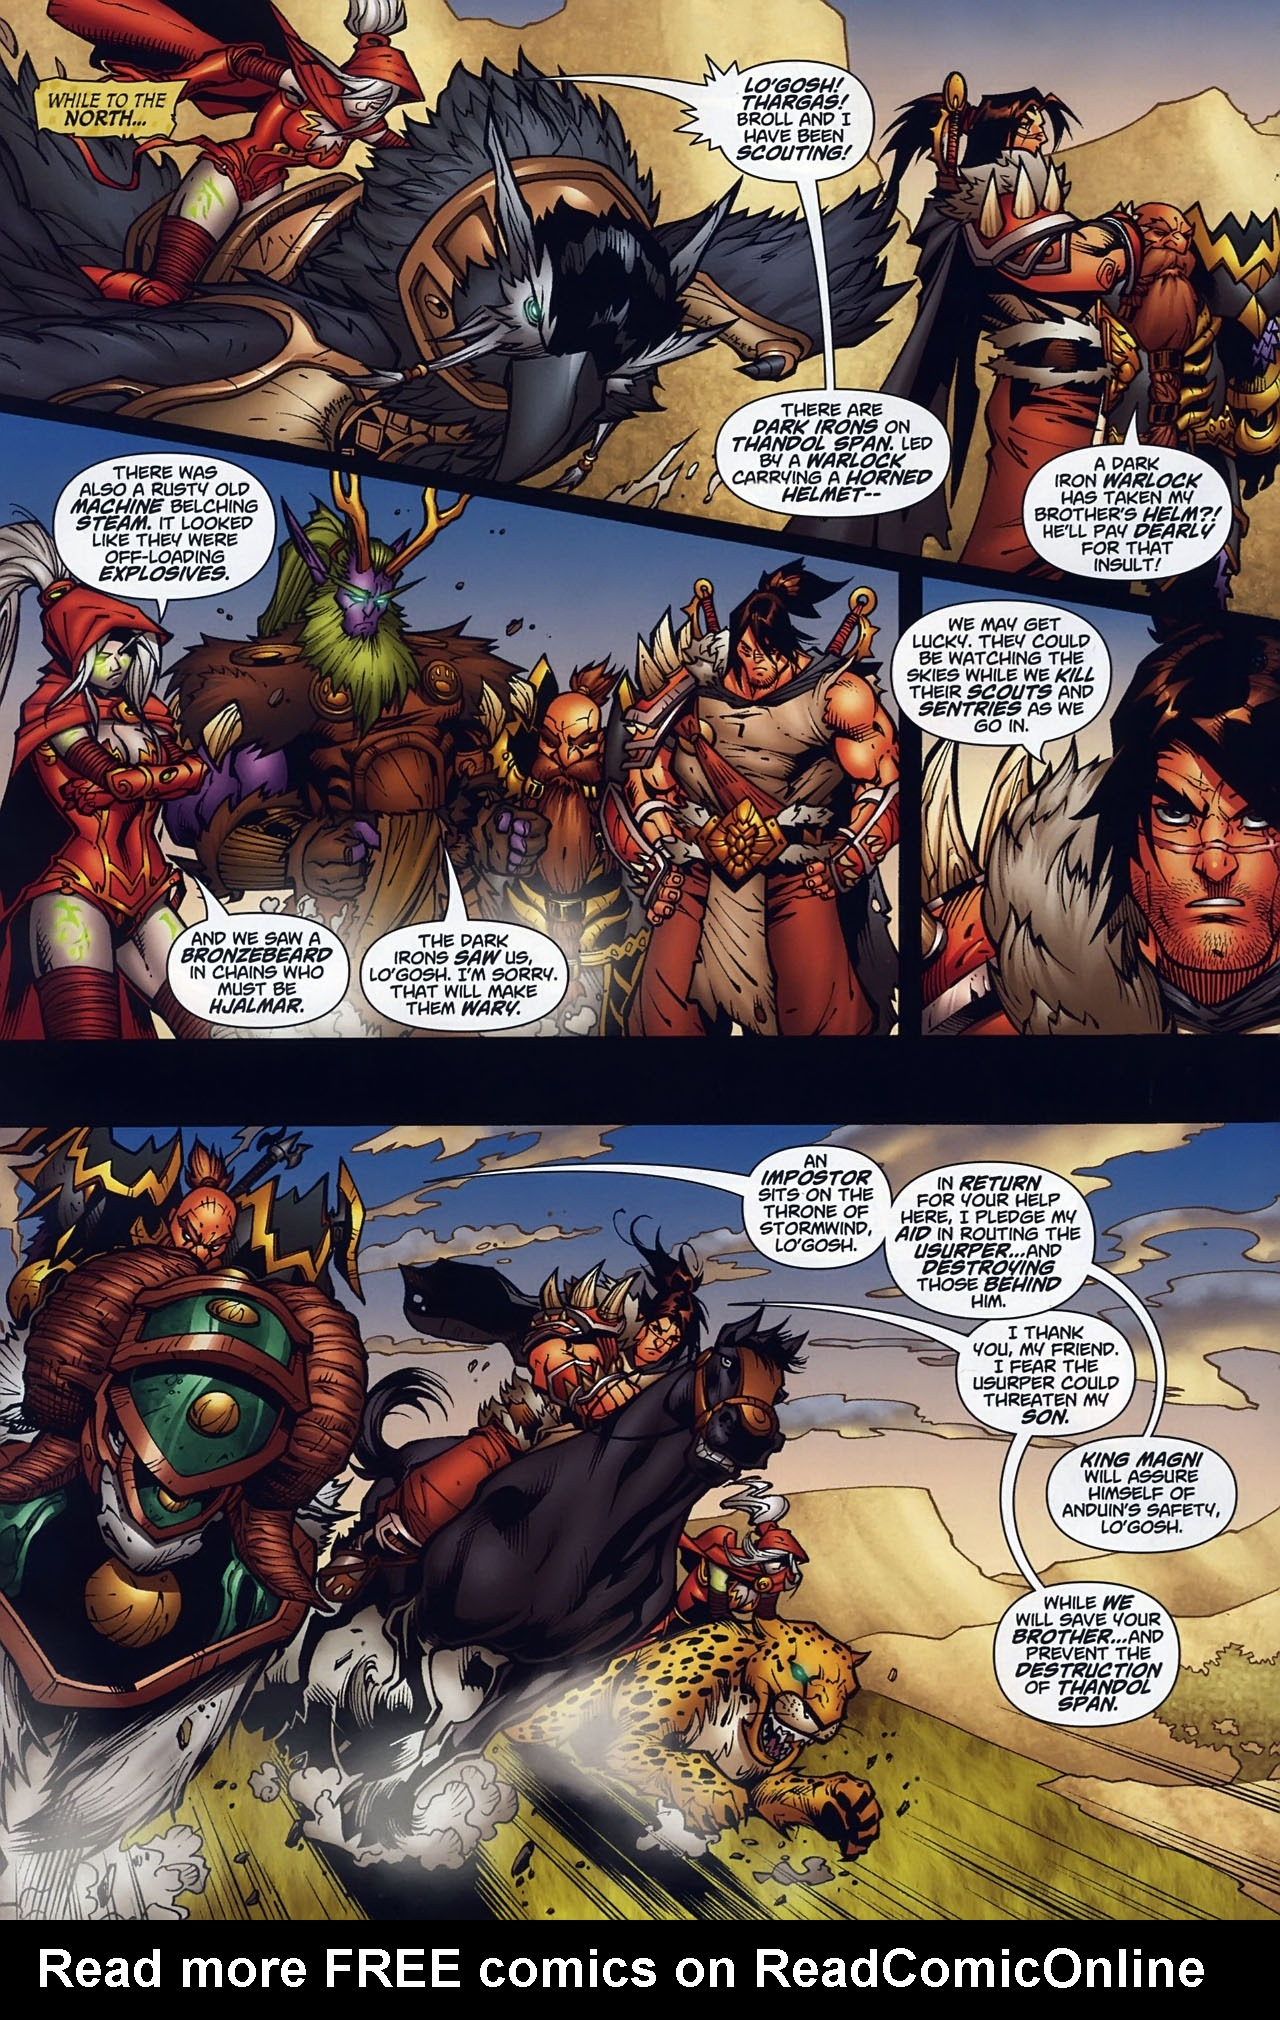 Read online World of Warcraft comic -  Issue #10 - 9